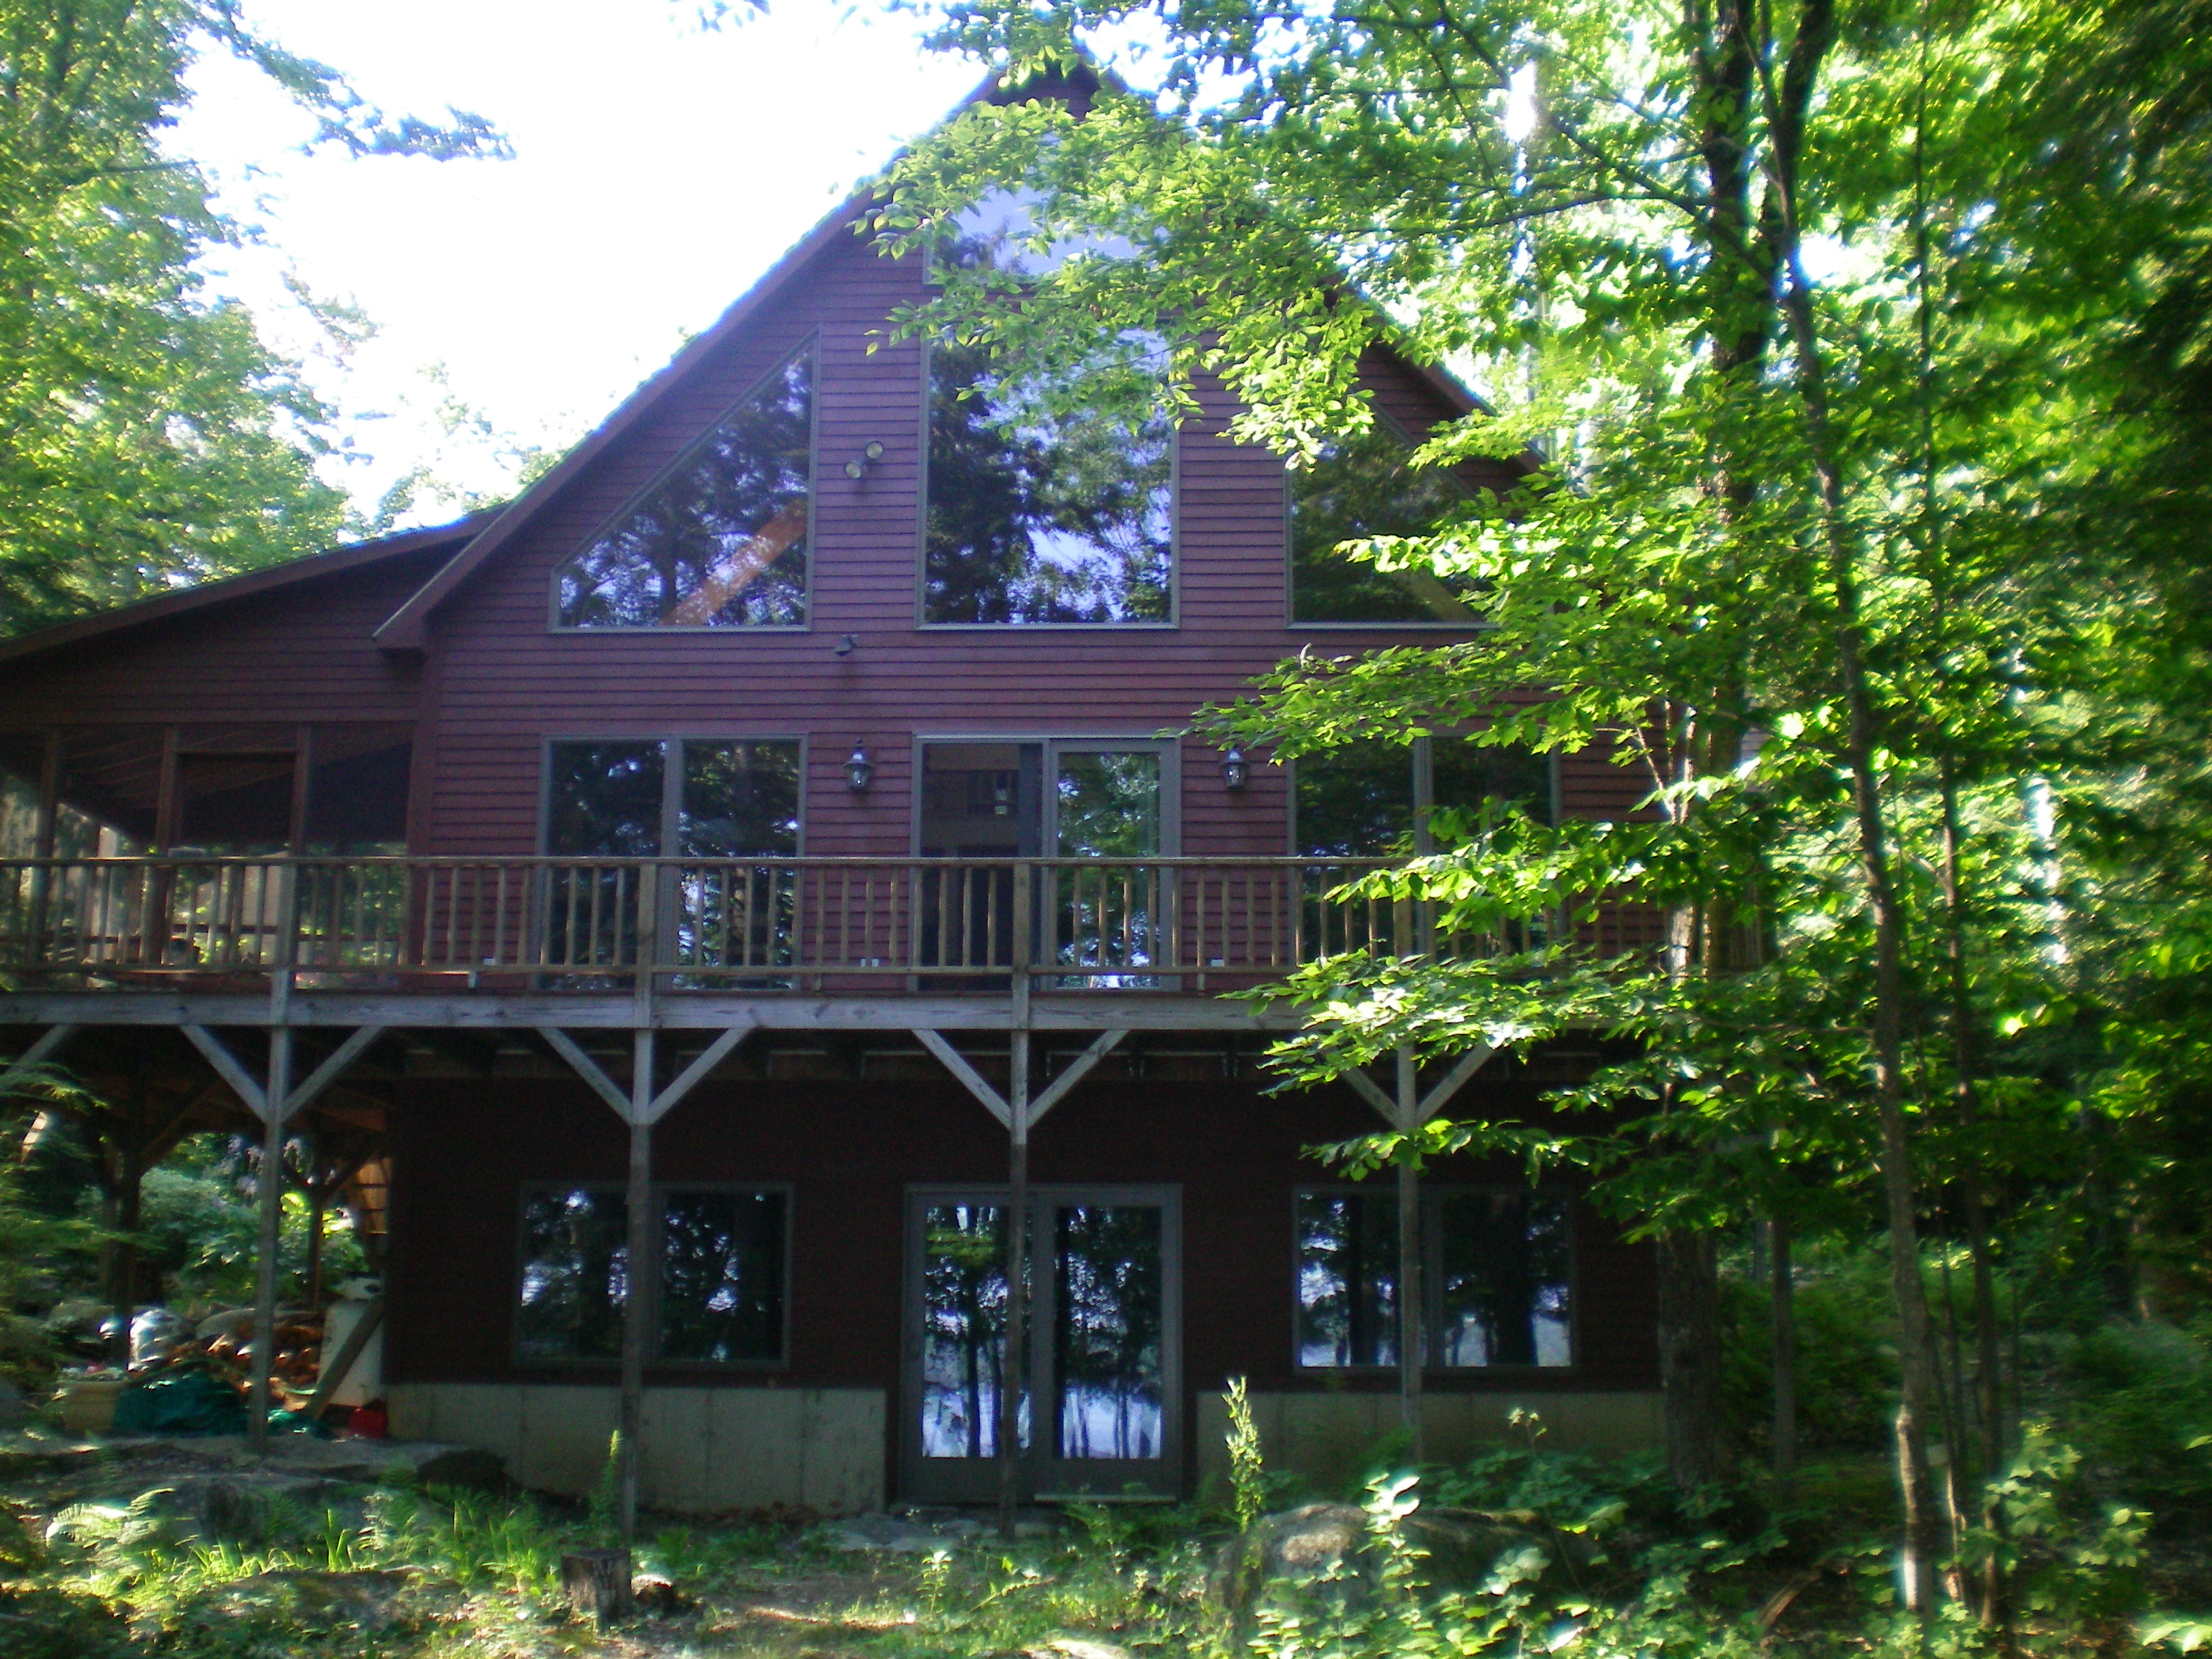 lake how in of england rentals for vacation cottage rent about region pics lakeside lakes moosehead the beautiful christmas cabin cabins a mountain and holiday variety enjoy winter maine new